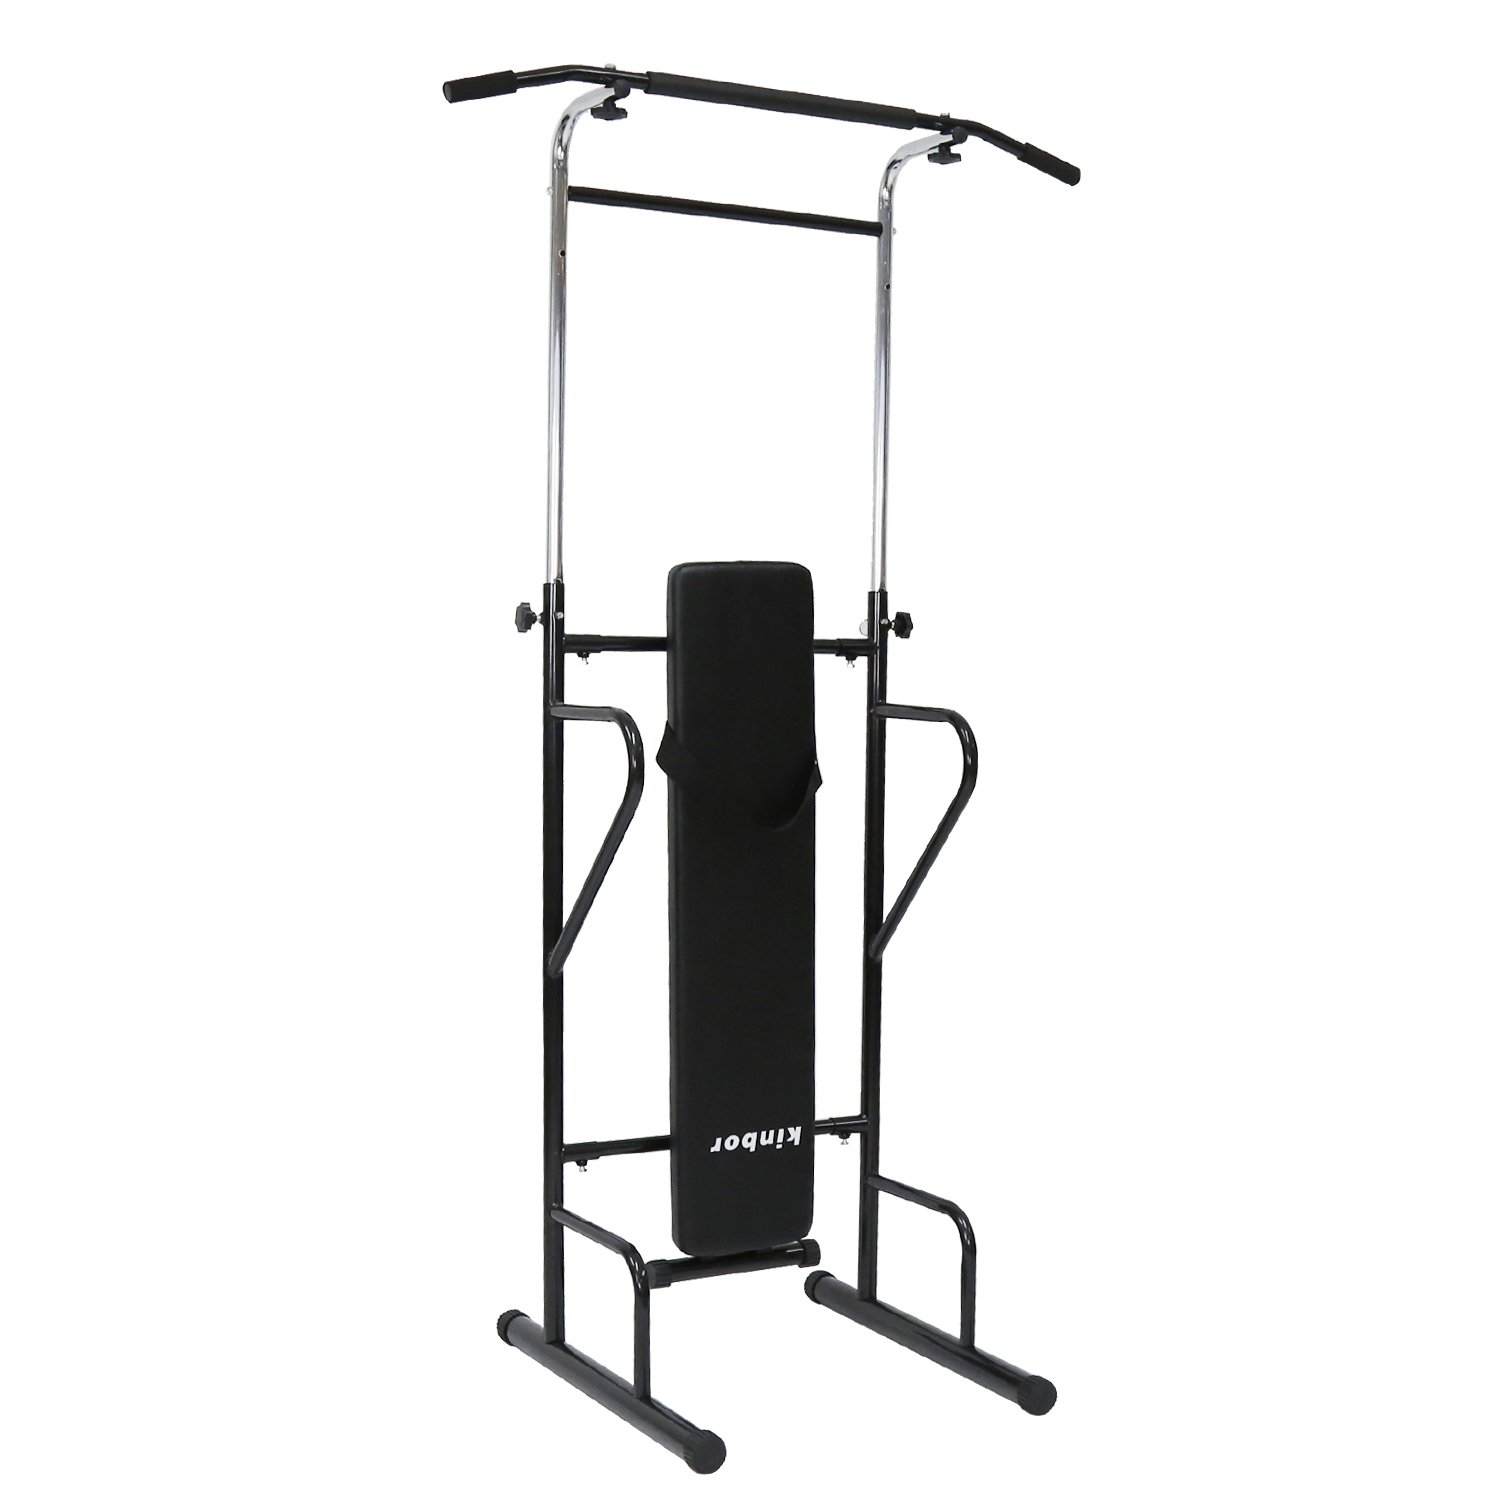 Peach Tree Power Tower Adjustable Height Multi-Function Home Strength Training Fitness Workout Station by Peachtree Press Inc